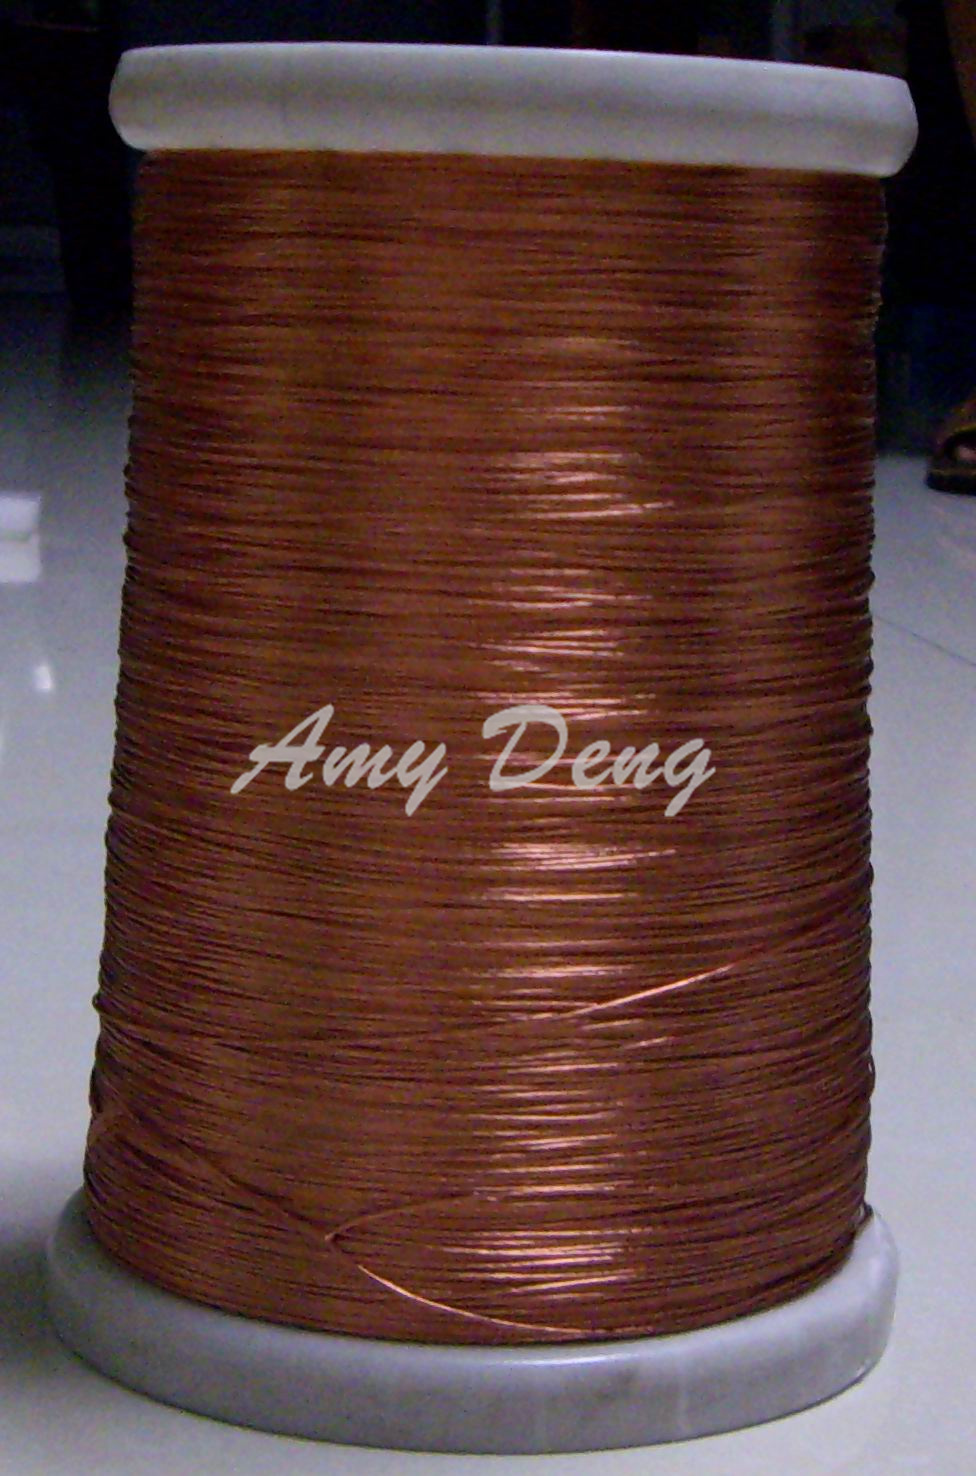 50 Meters/lot  0.1x150 Strands Of Light Stranded Wire, Copper Wire, Stranded Wire, Copp